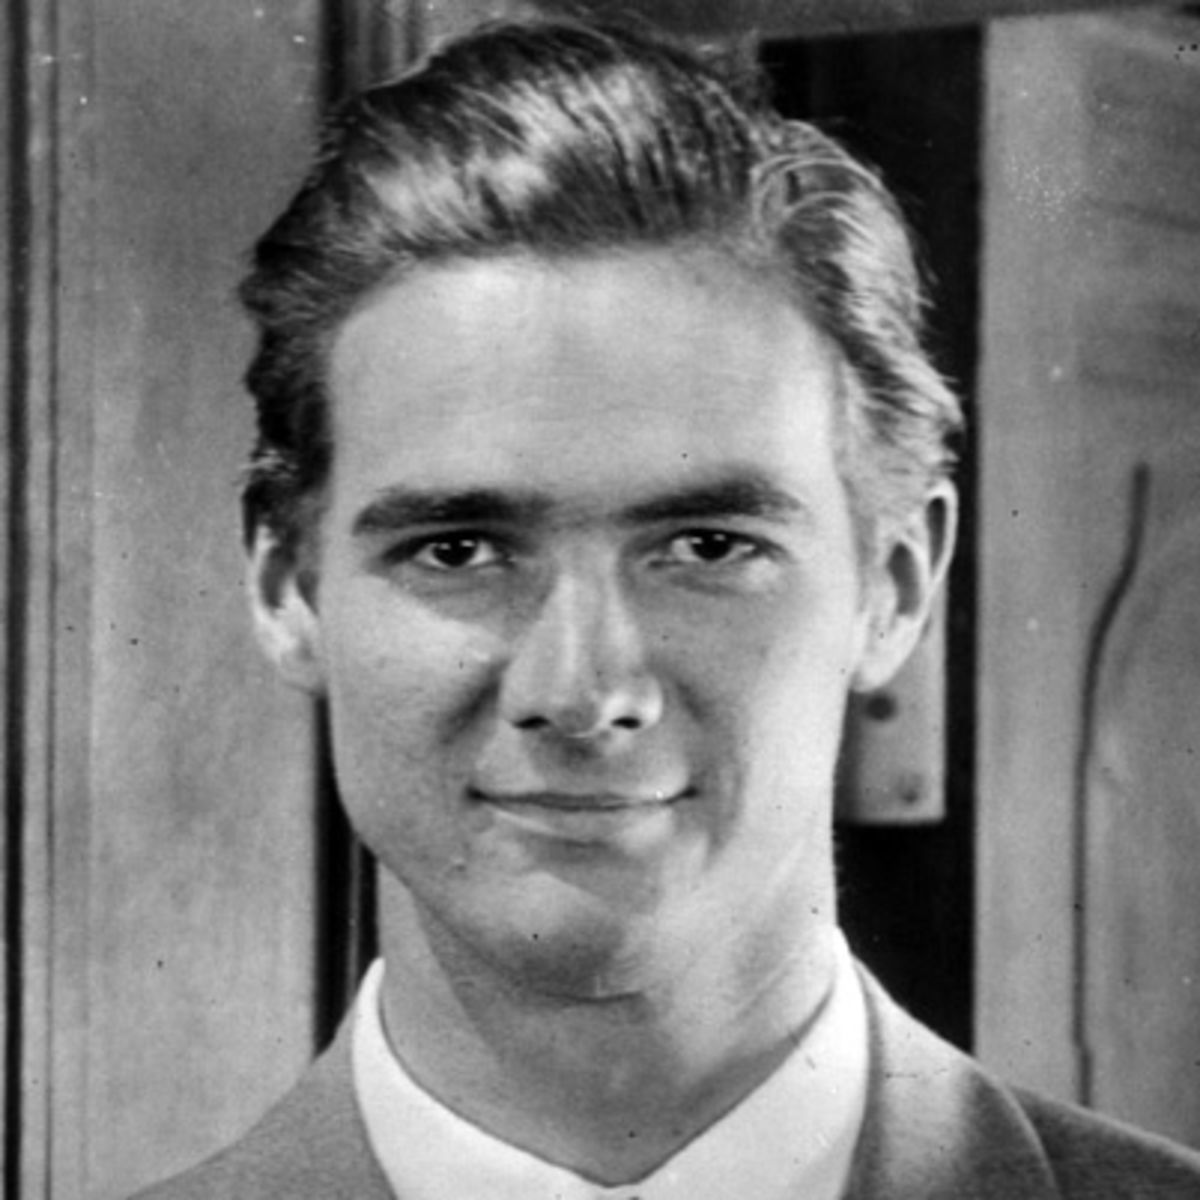 Howard Hughes Quotes: Take A Peek Inside Howard Hughes' Life As A Wealthy